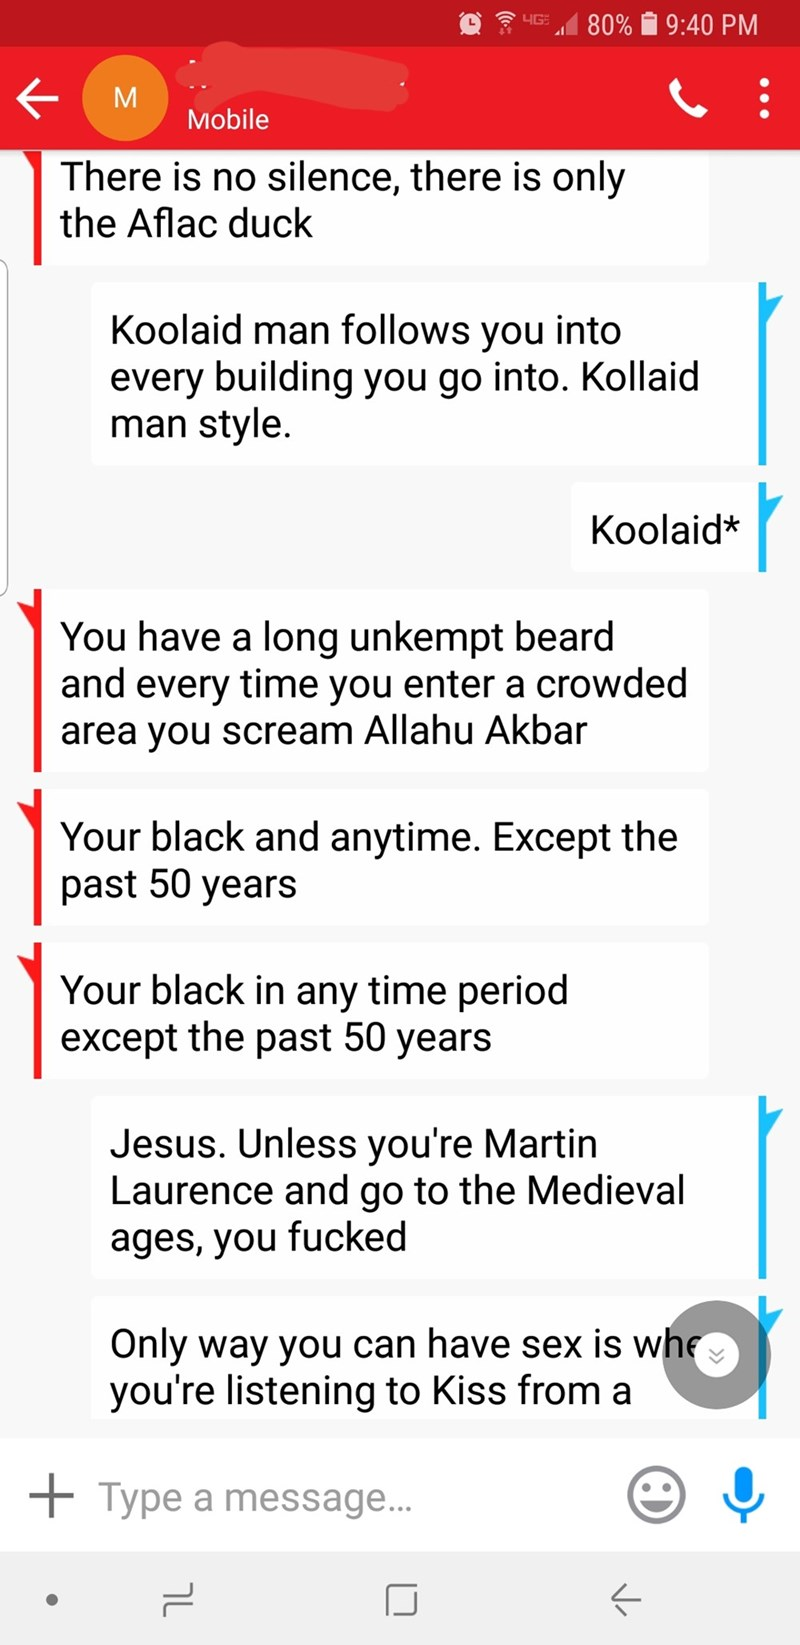 ruin a life - Text - 4G 80% 9:40 PM M Mobile There is no silence, there is only the Aflac duck Koolaid man follows you into every building you go into. Kollaid man style. Koolaid* You have a long unkempt beard and every time you enter a crowded area you scream Allahu Akbar Your black and anytime. Except the past 50 years Your black in any time period except the past 50 years Jesus. Unless you're Martin Laurence and go to the Medieval ages, you fucked Only way you can have sex is whe you're liste